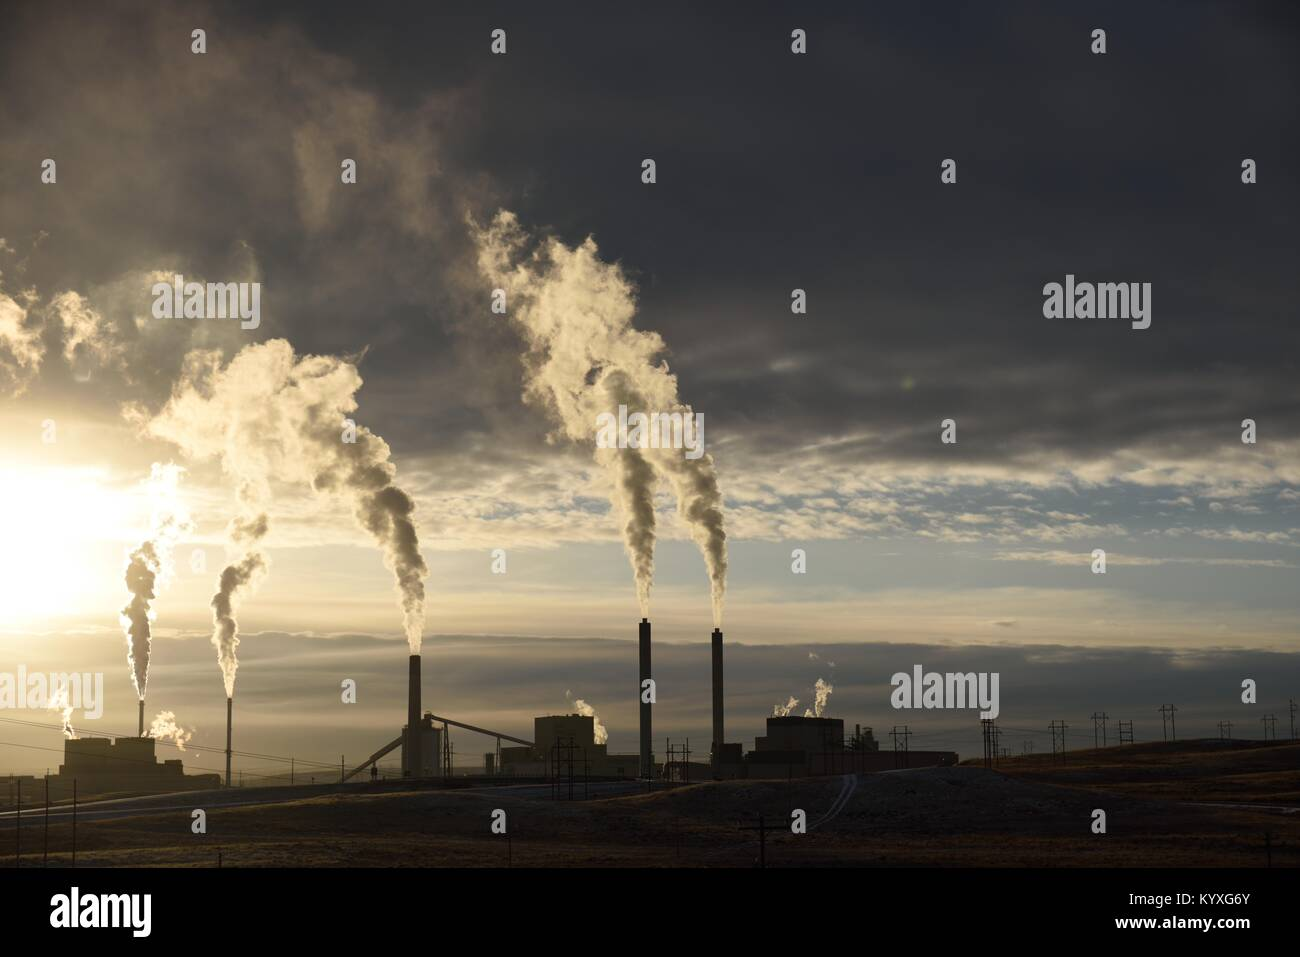 Emissions rising from the smoke stacks of an industrial coal-fired power plant at sunset near Gillette, Wyoming - Stock Image